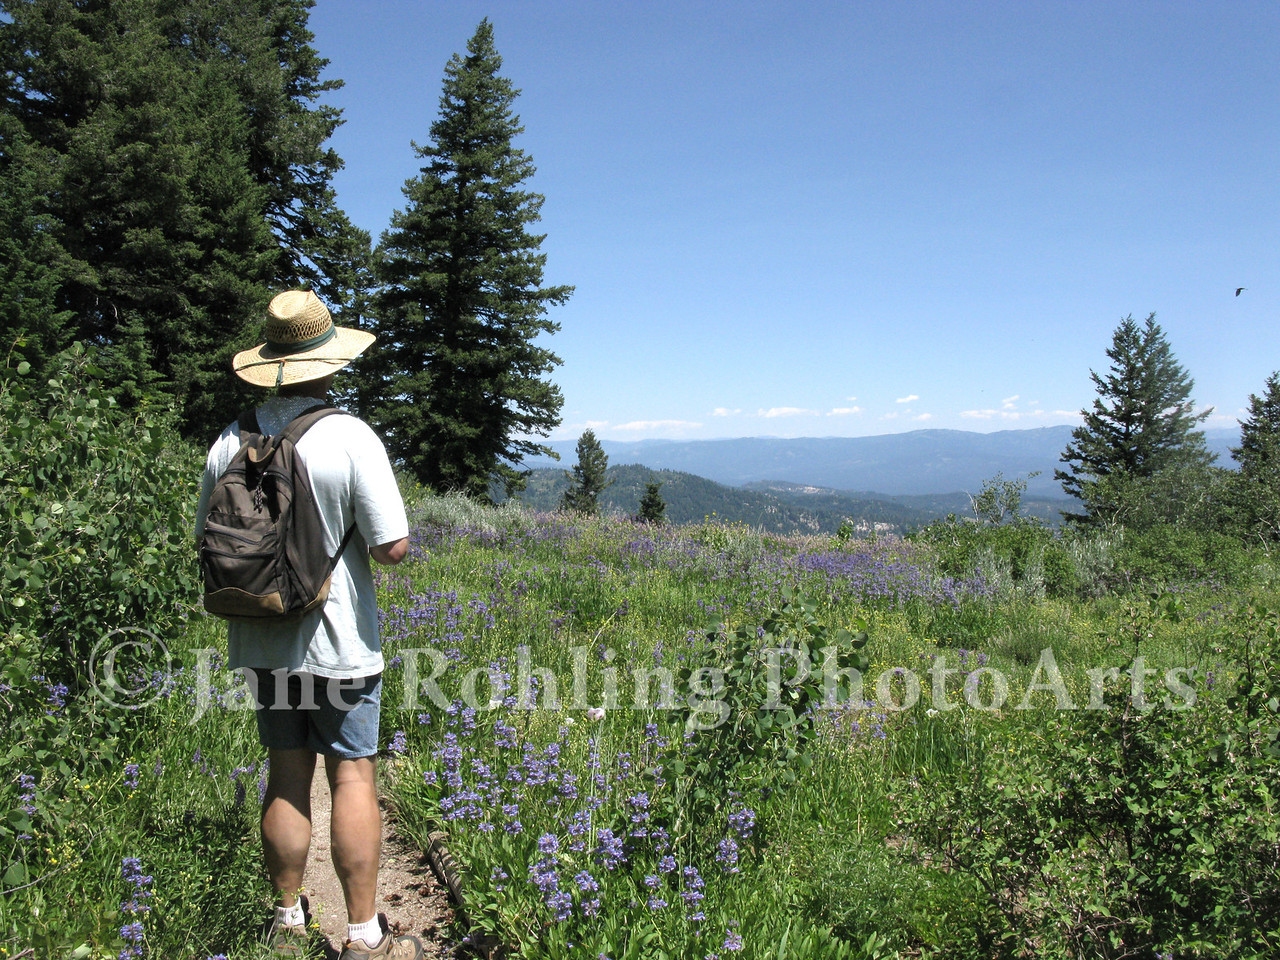 A man enjoys a day hike through a meadow filled with summer wildflowers on Mores Mountain on the Boise National Forest near Boise, Idaho